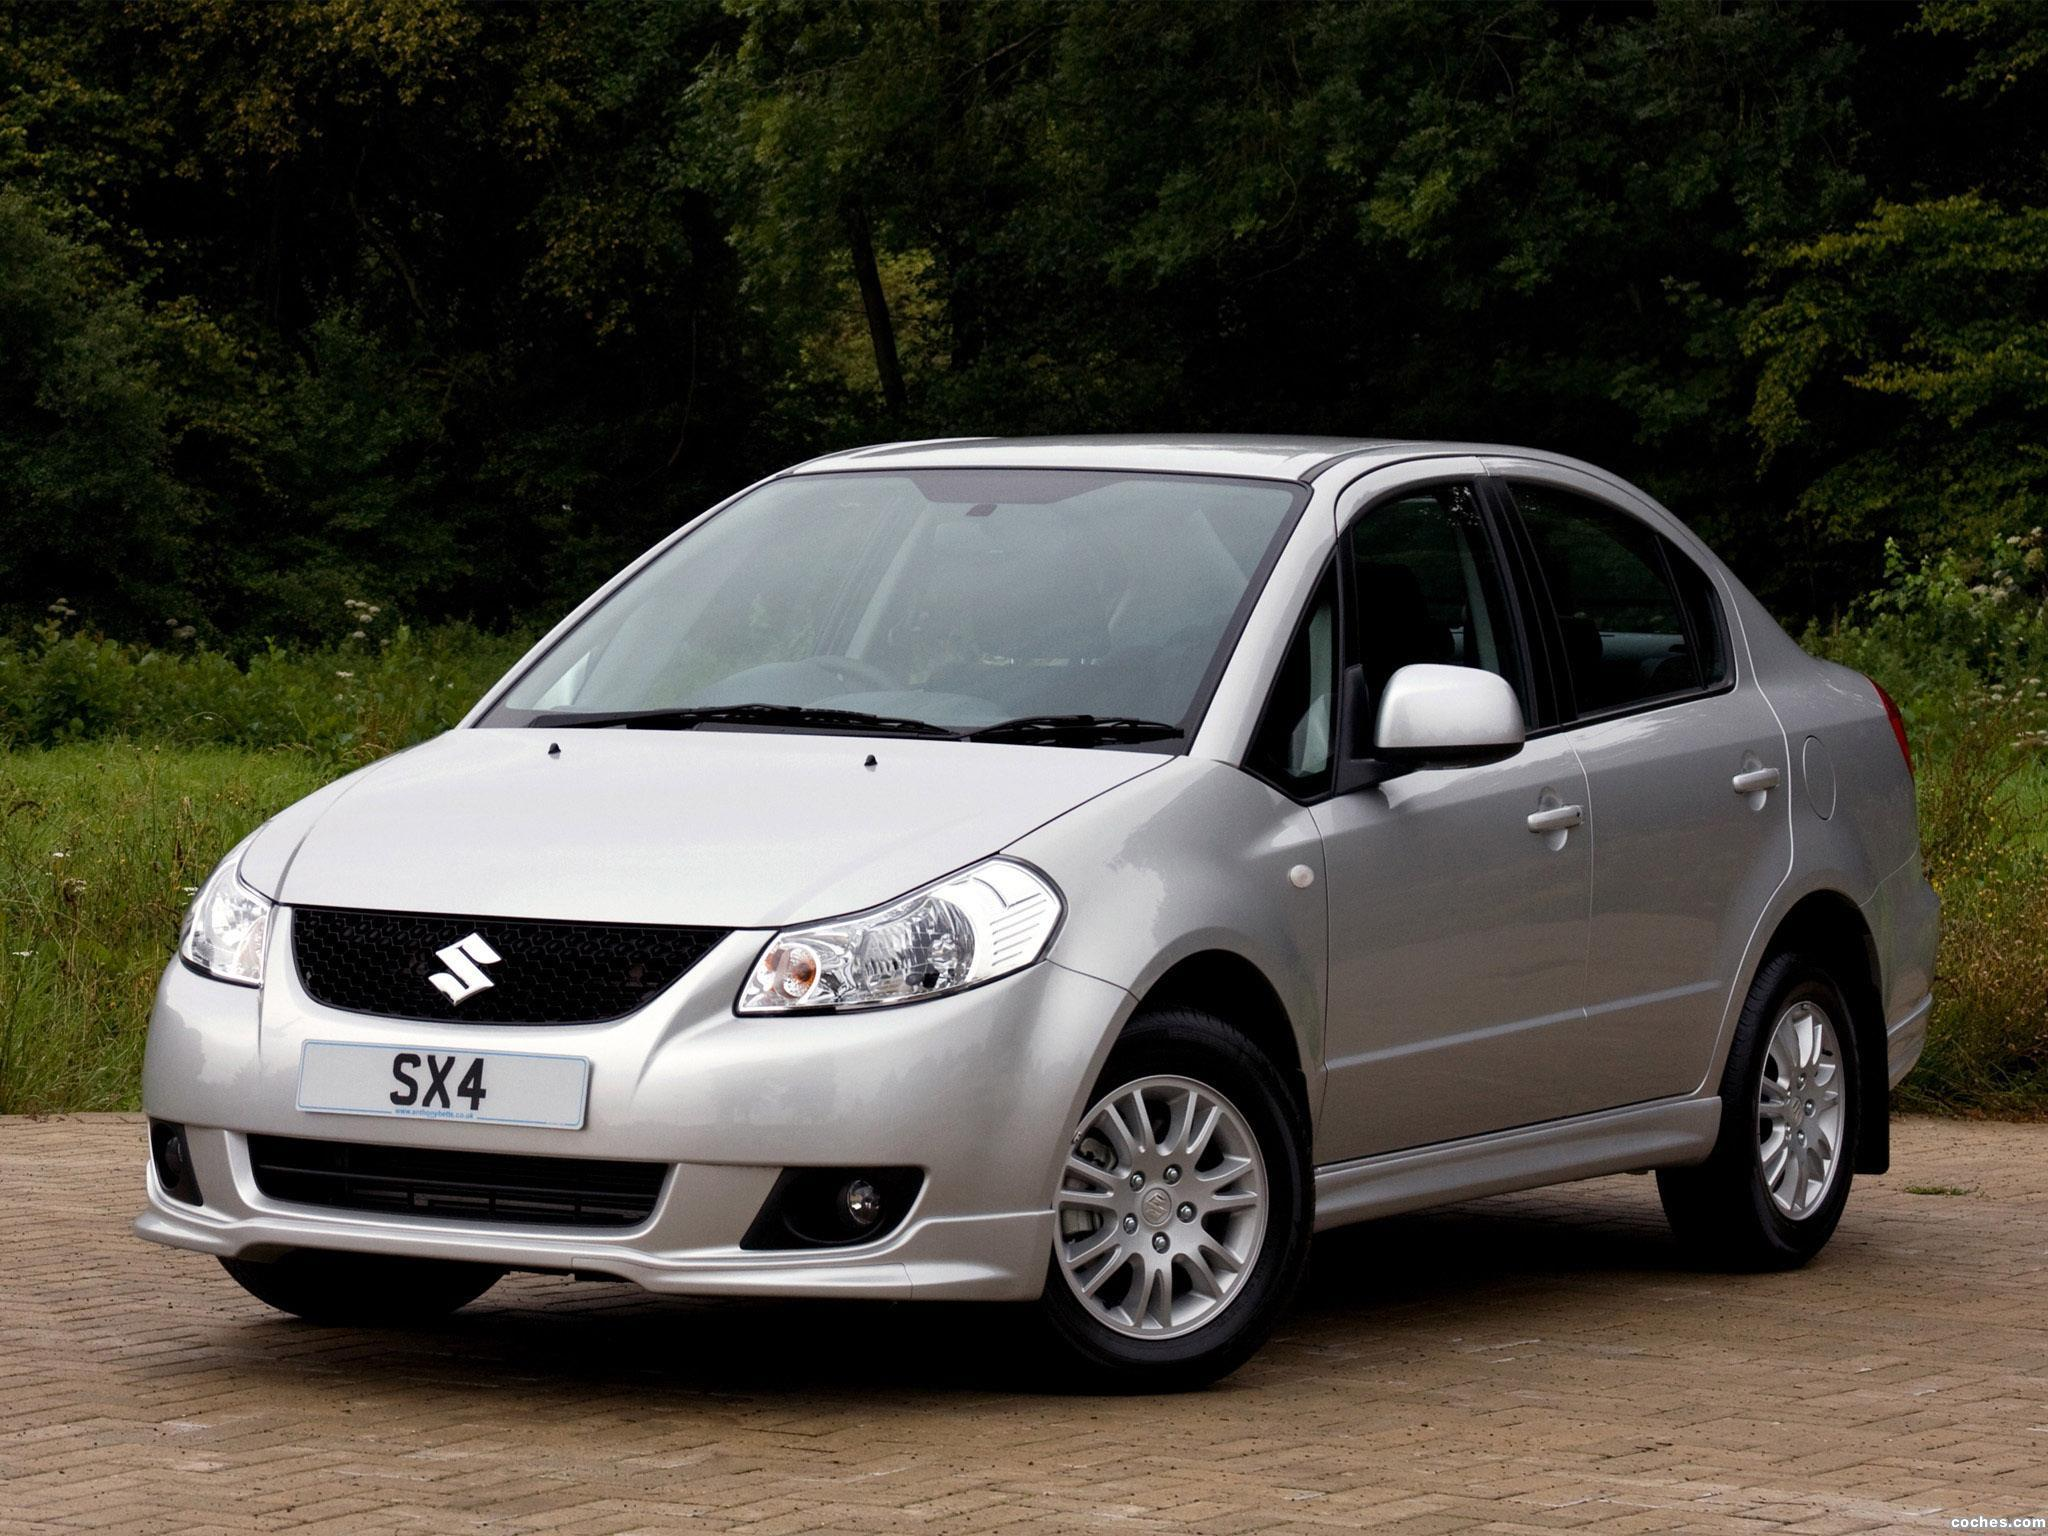 Foto 0 de Suzuki SX4 Sedan UK 2009